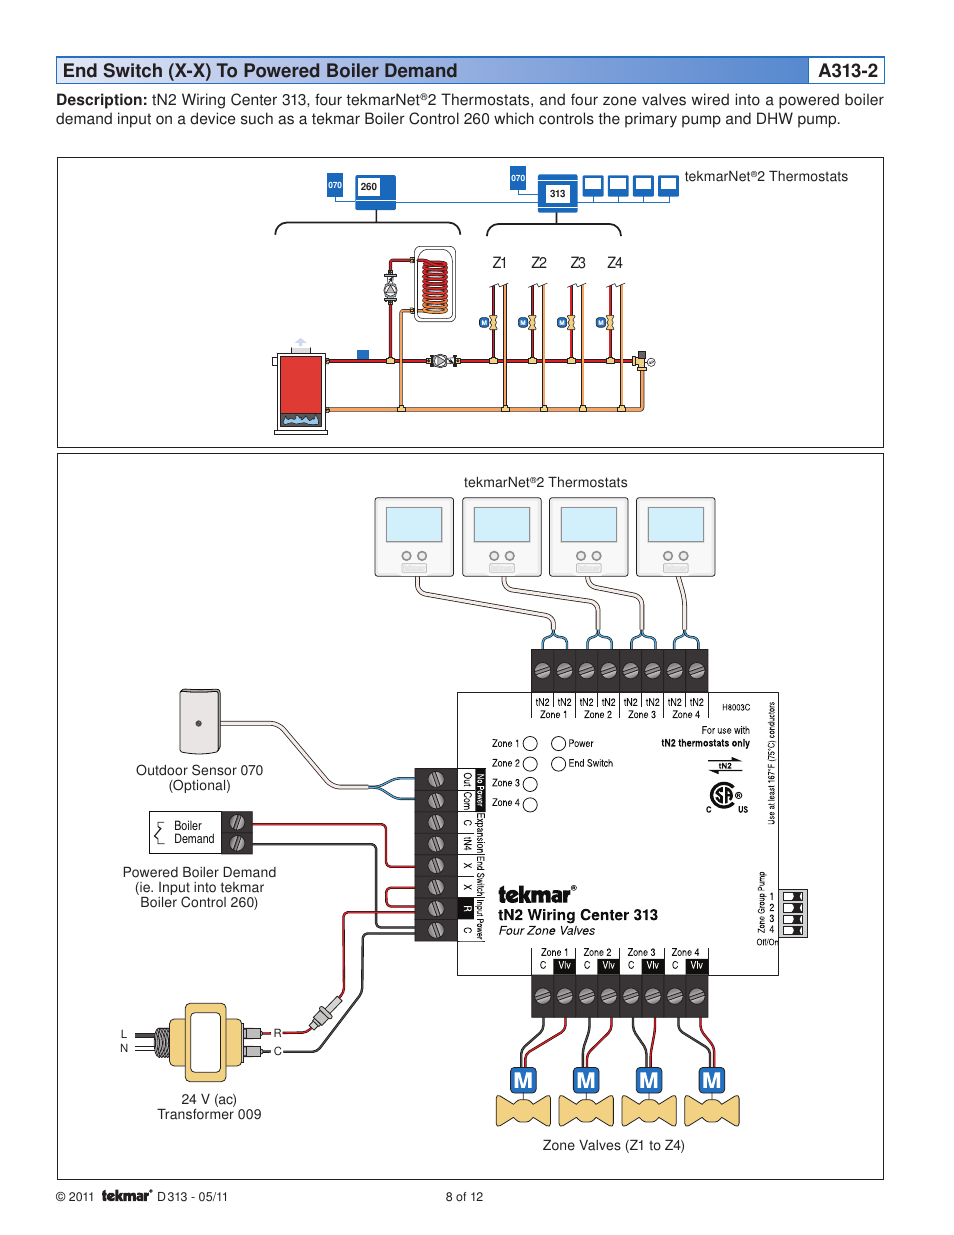 ford 900 wiring diagram end switch (x-x) to powered boiler demand a313-2 | tekmar ... #8